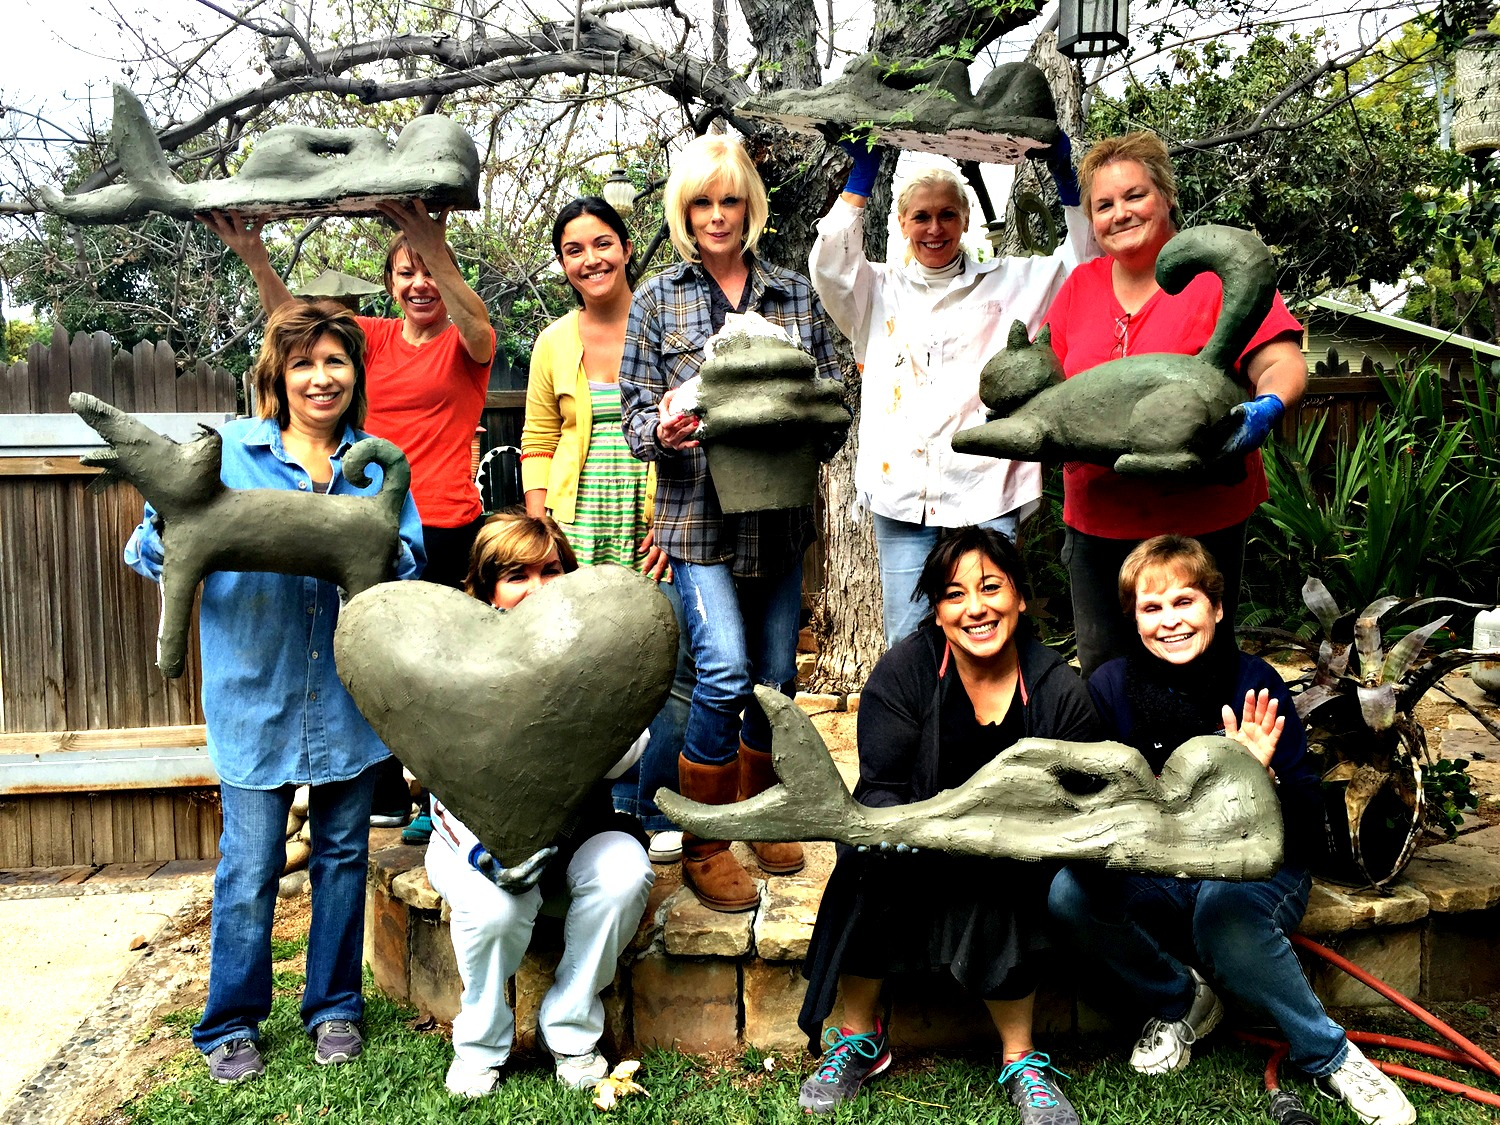 Garden Sculpture workshop by Katherine England